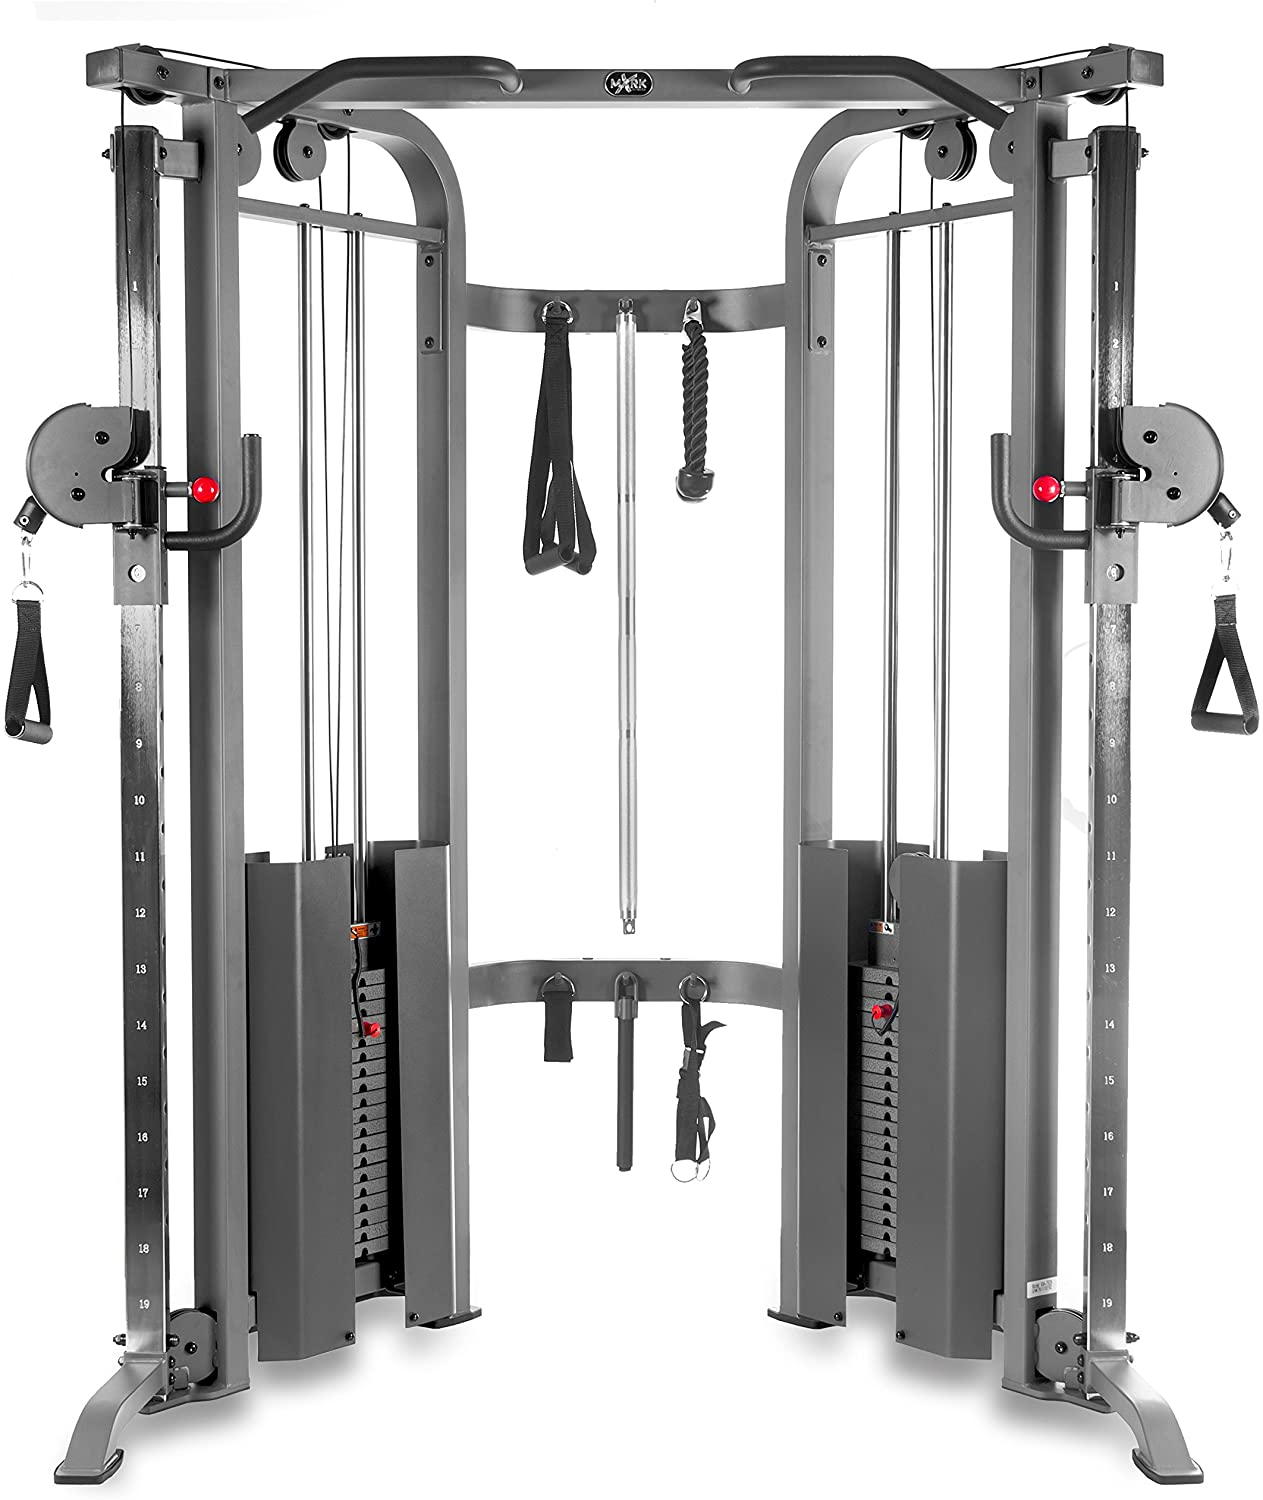 Amazon.com : XMark Functional Trainer Cable Machine with Dual 200 lb Weight Stacks, 19 Adjustments, and Accessory Package XM-7626 : Home Gyms : Sports & Outdoors